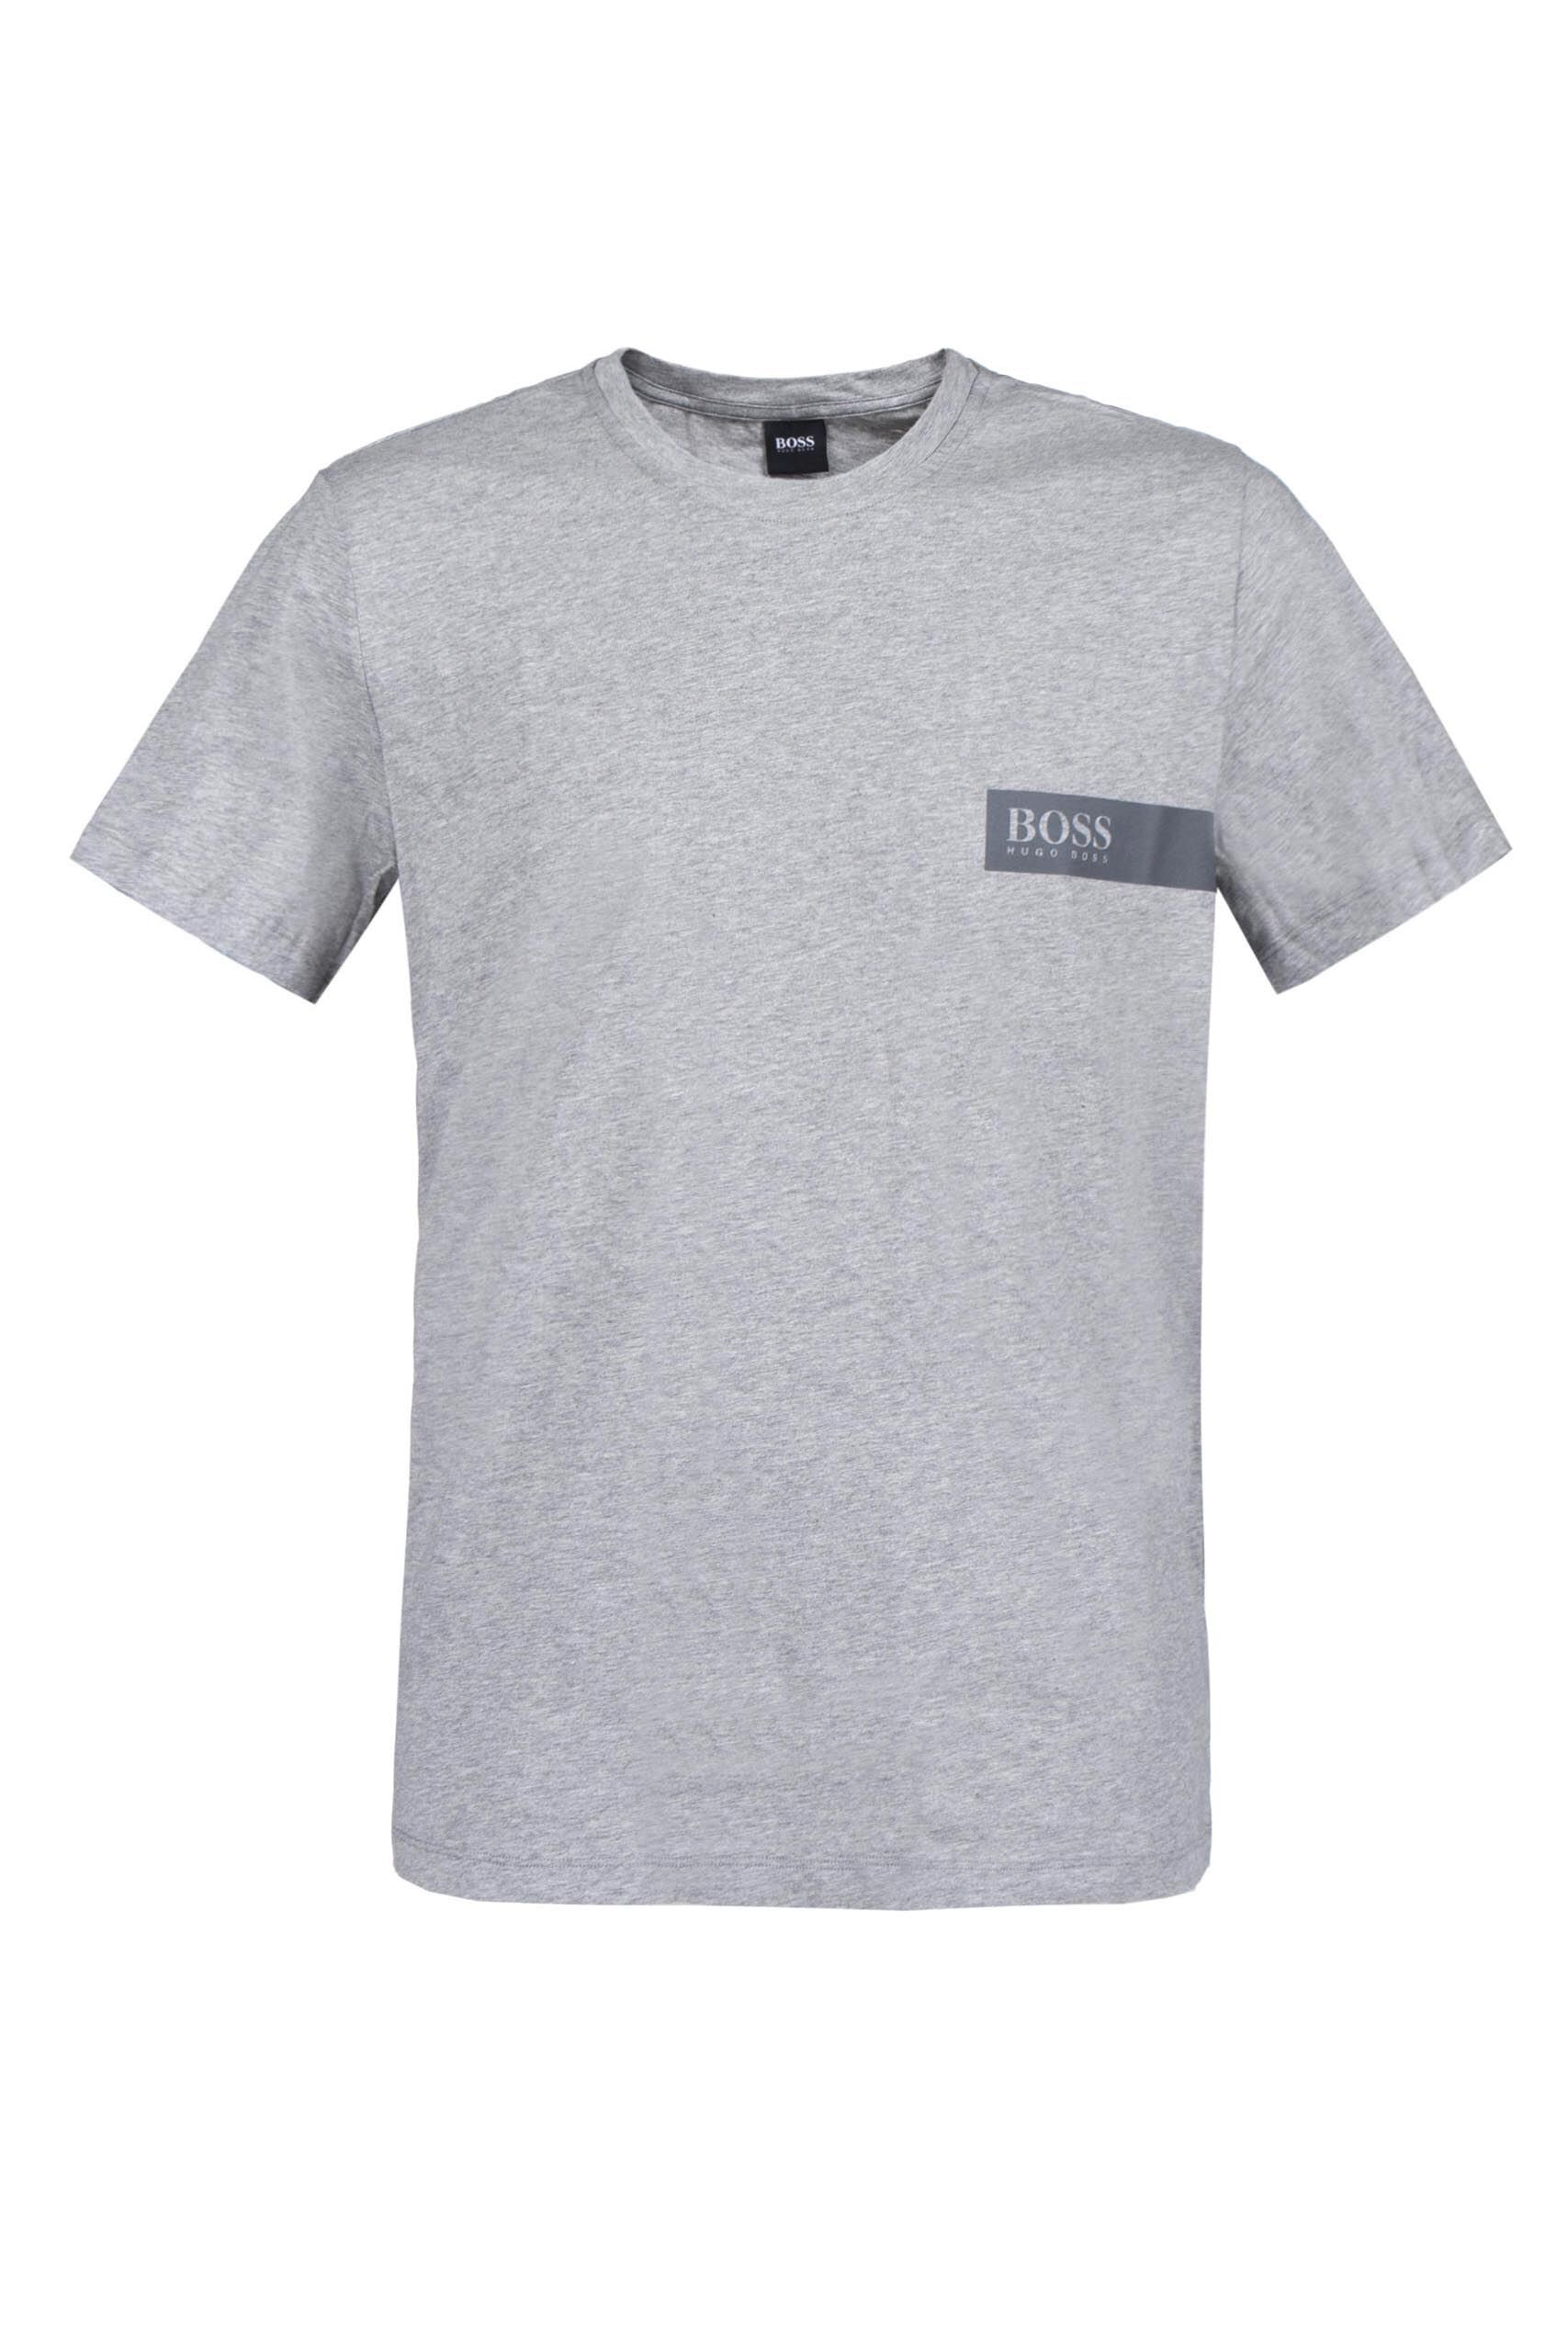 Image of 1 Pack Grey BOSS Round Neck Boss Chest Logo T-Shirt Men's Extra Large - Hugo Boss